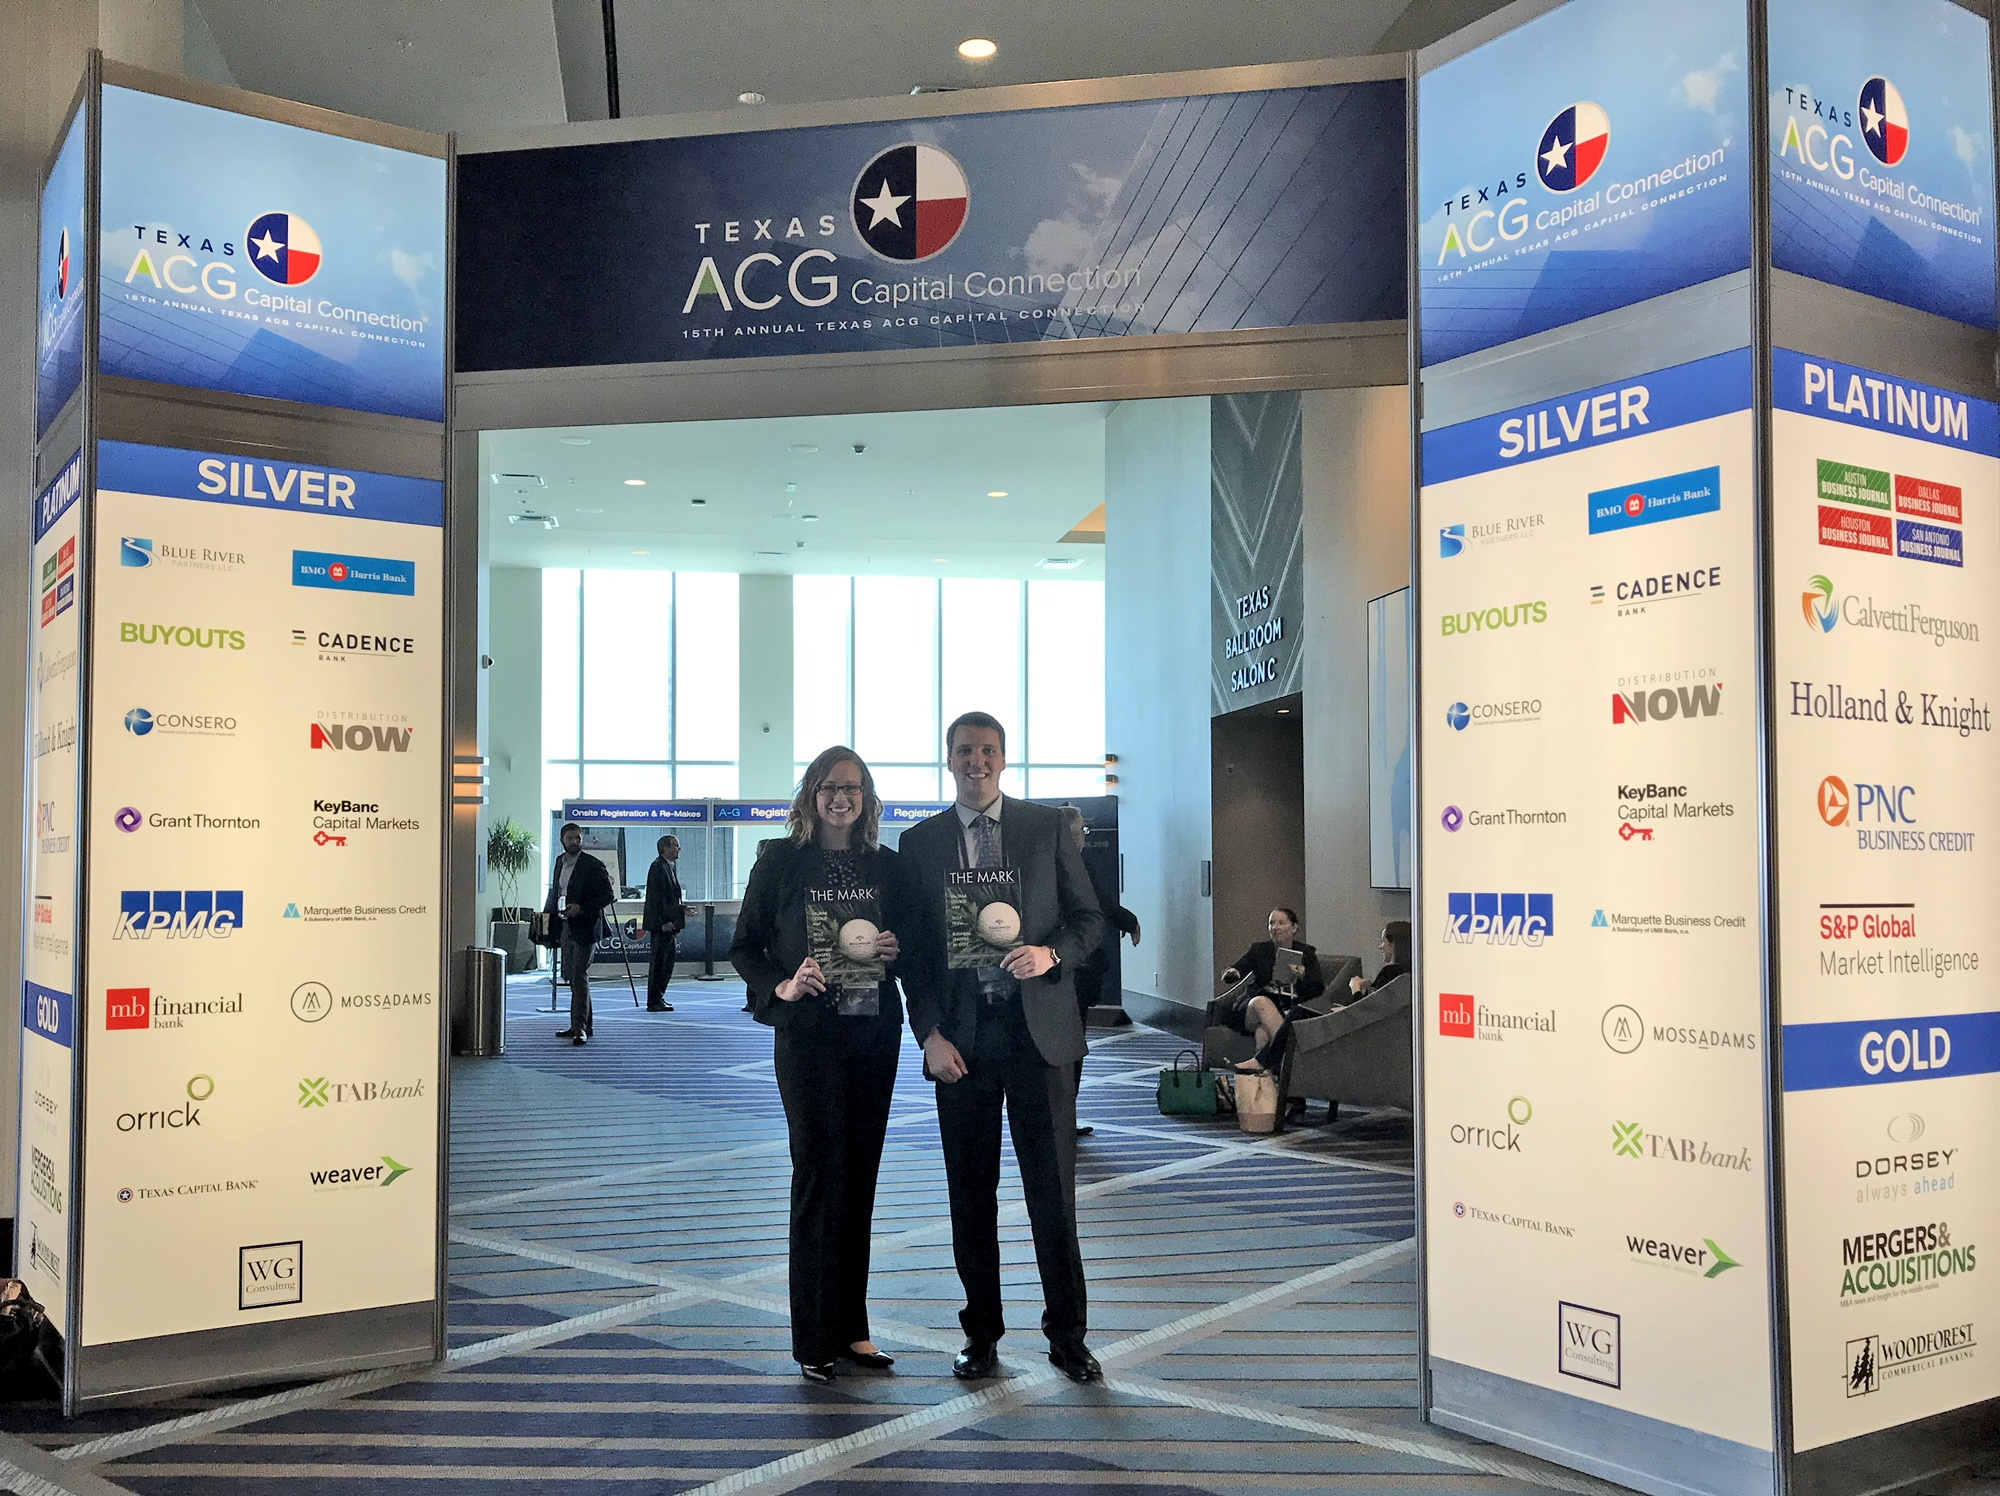 Benchmark International Attends Texas ACG Capital Connection